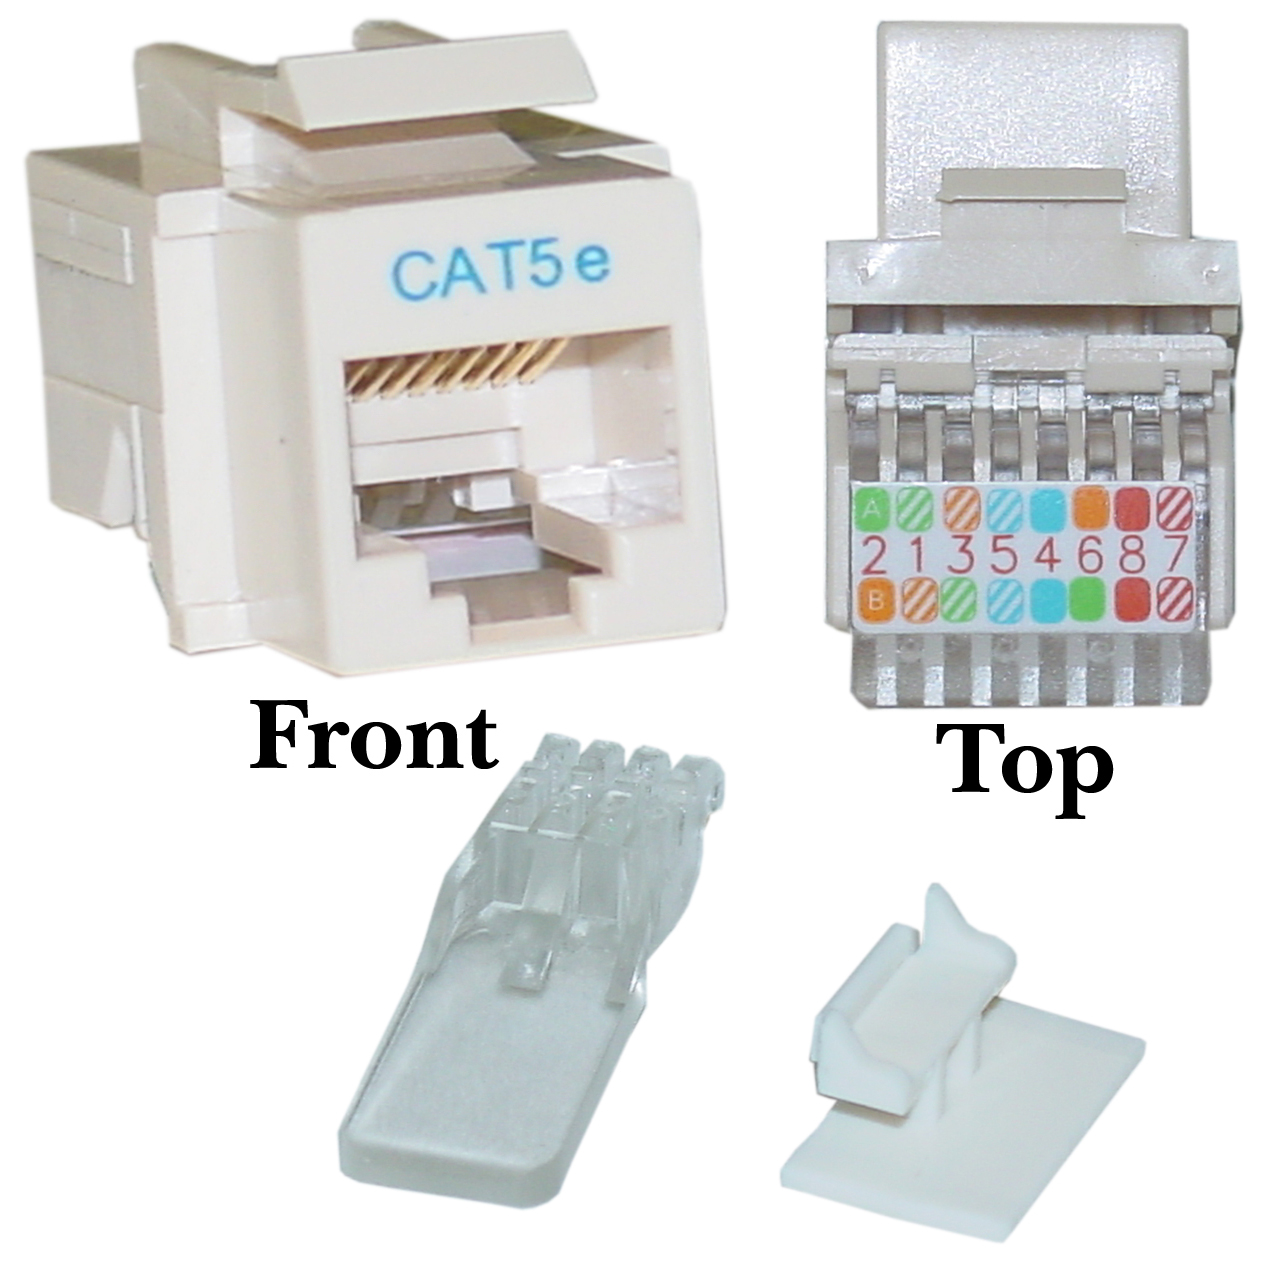 hight resolution of cat5e rj45 keystone jack wiring diagram cat5e keystone jack wiring rj45 cat5e wiring cat5e rj45 wiring